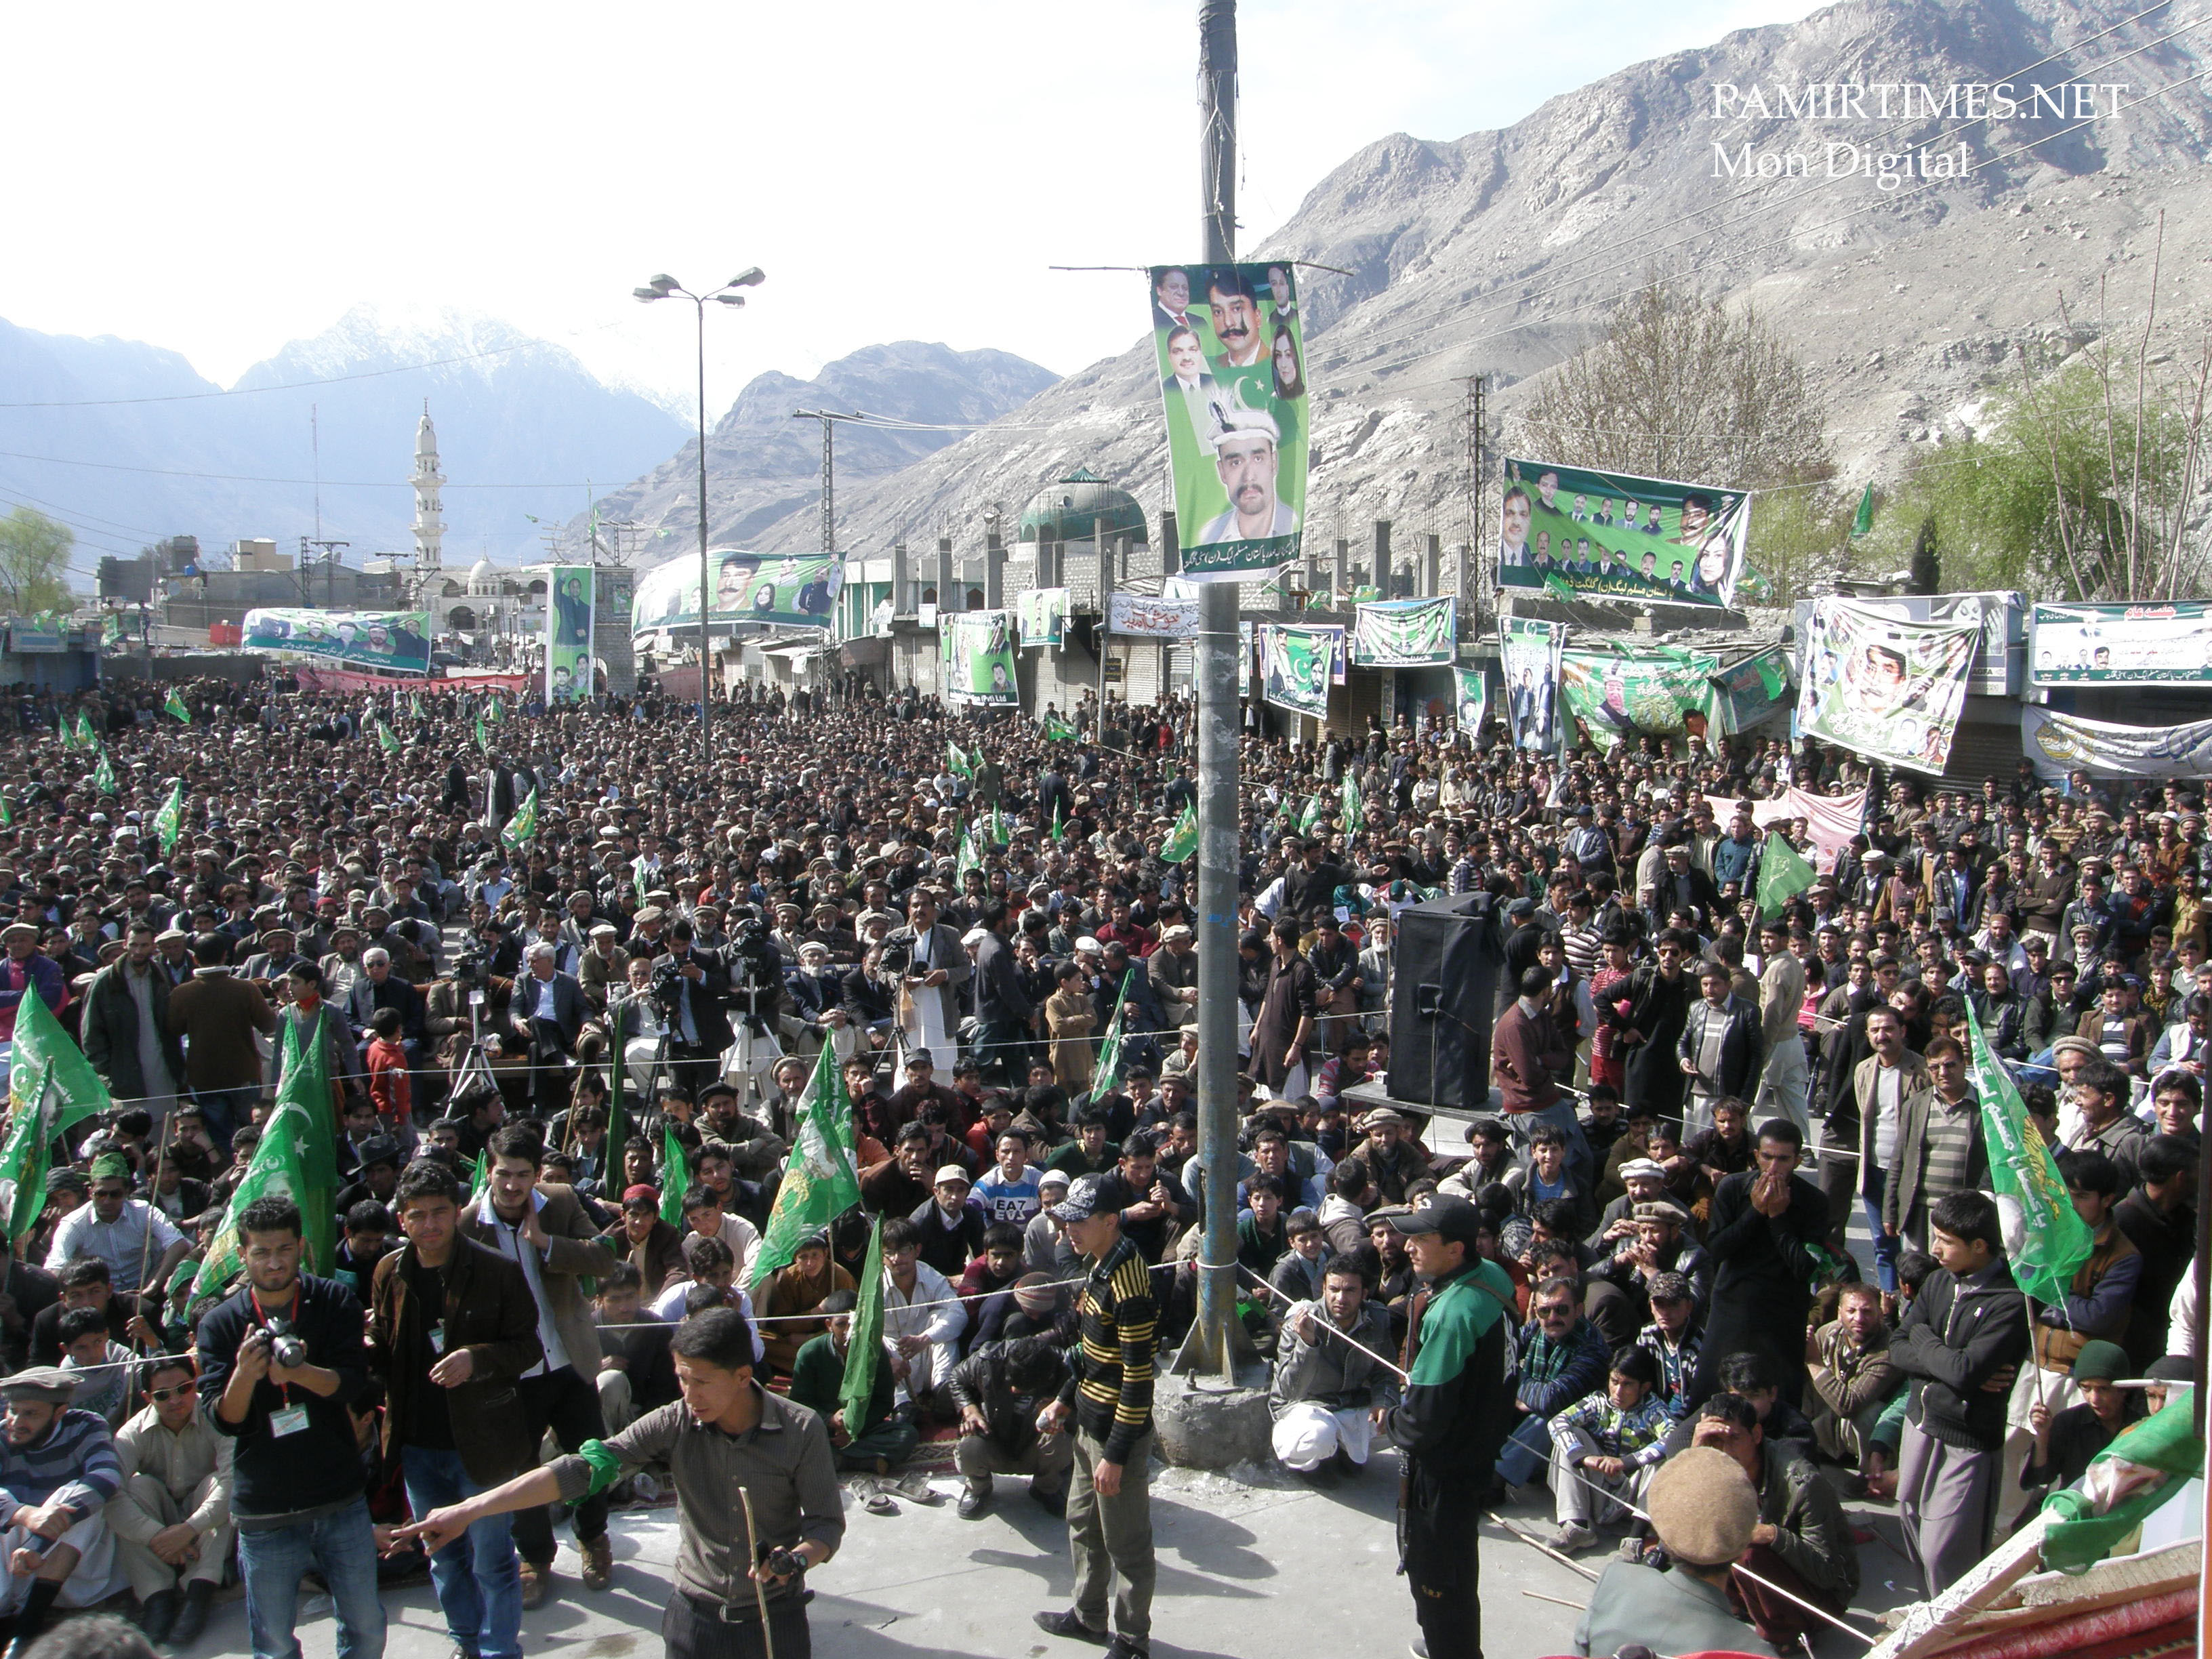 Thousands of people were present in the huge gathering